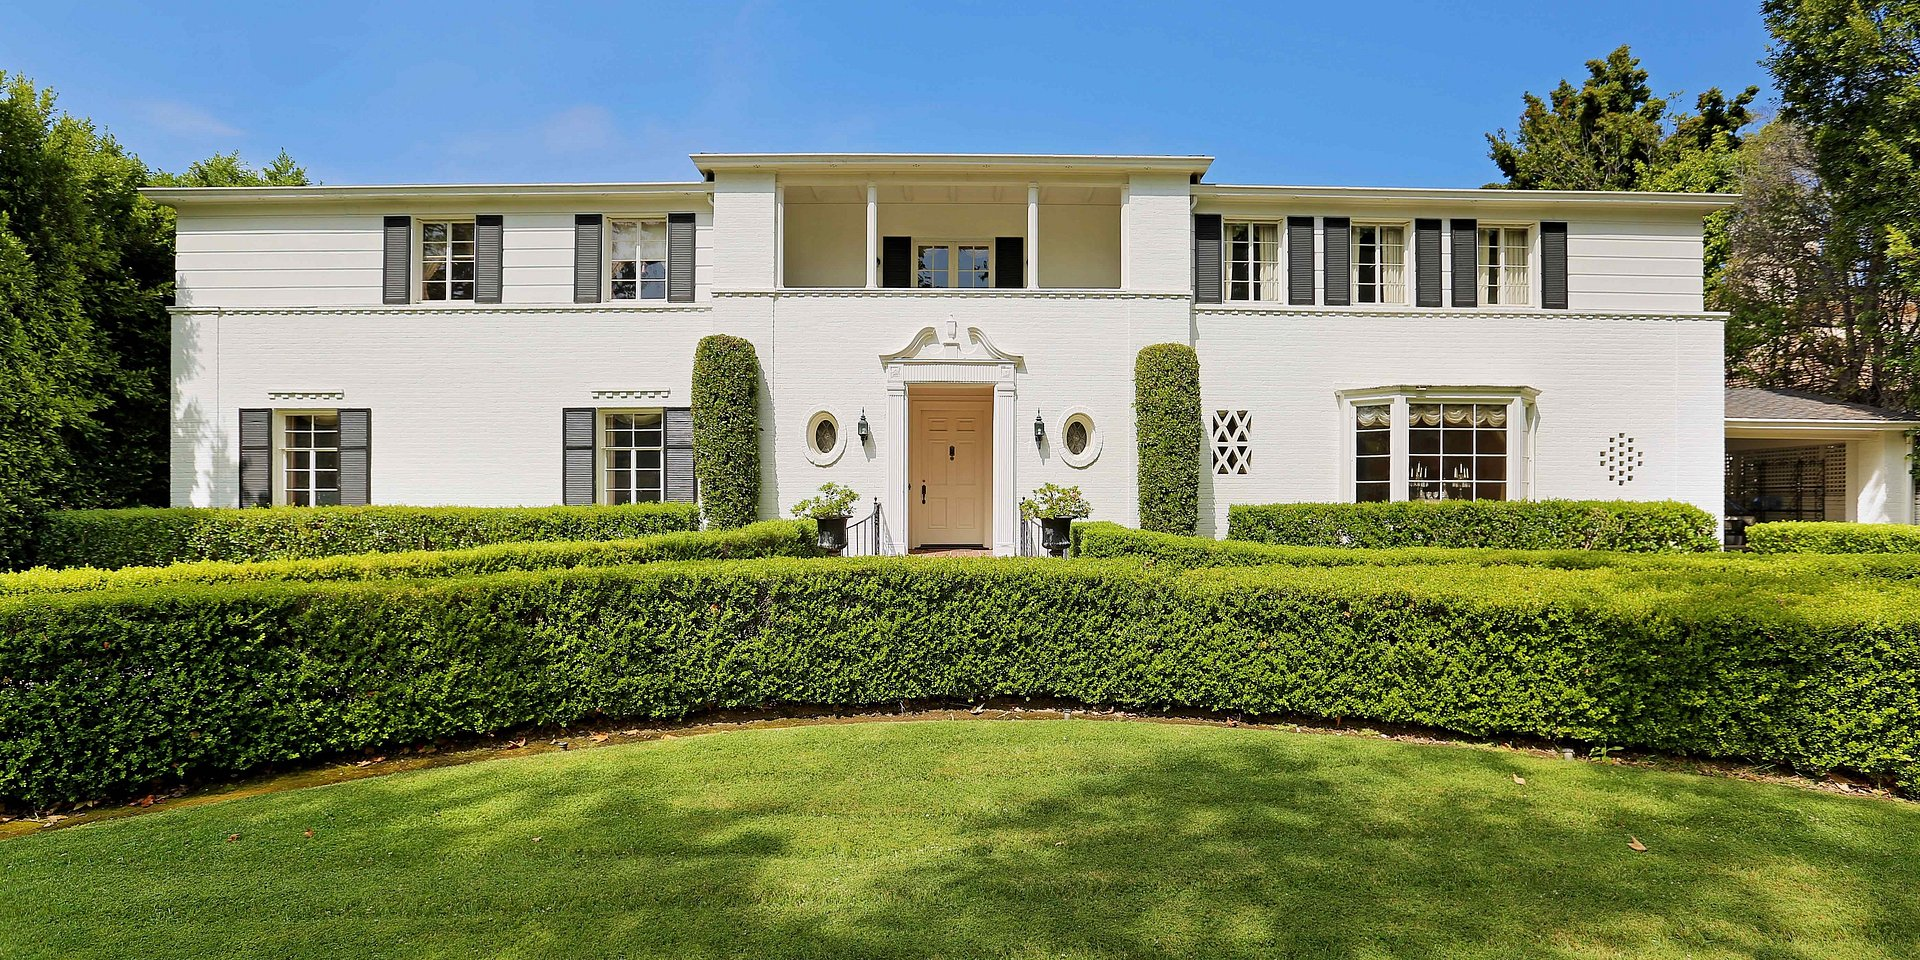 Coldwell Banker Realty Lists Los Angeles Property Designed by Paul Williams AIA for $6.75 Million